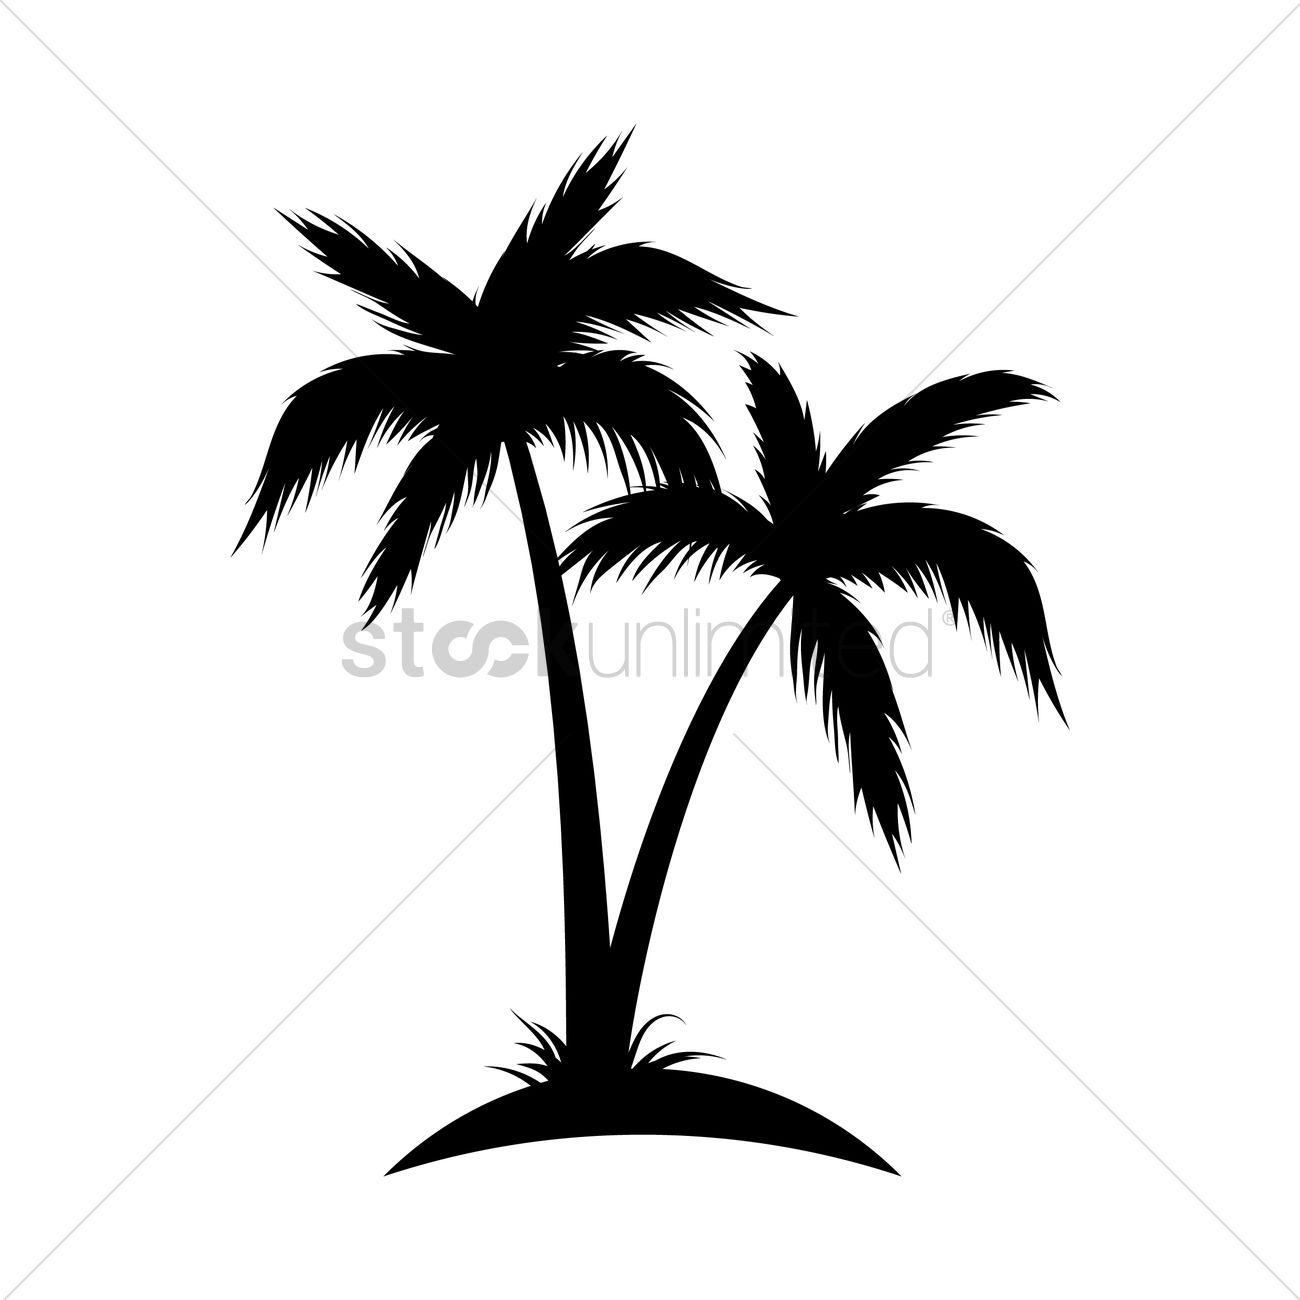 silhouette of coconut tree vector image 1902987 Palm Tree Graphic Palm Tree Graphic